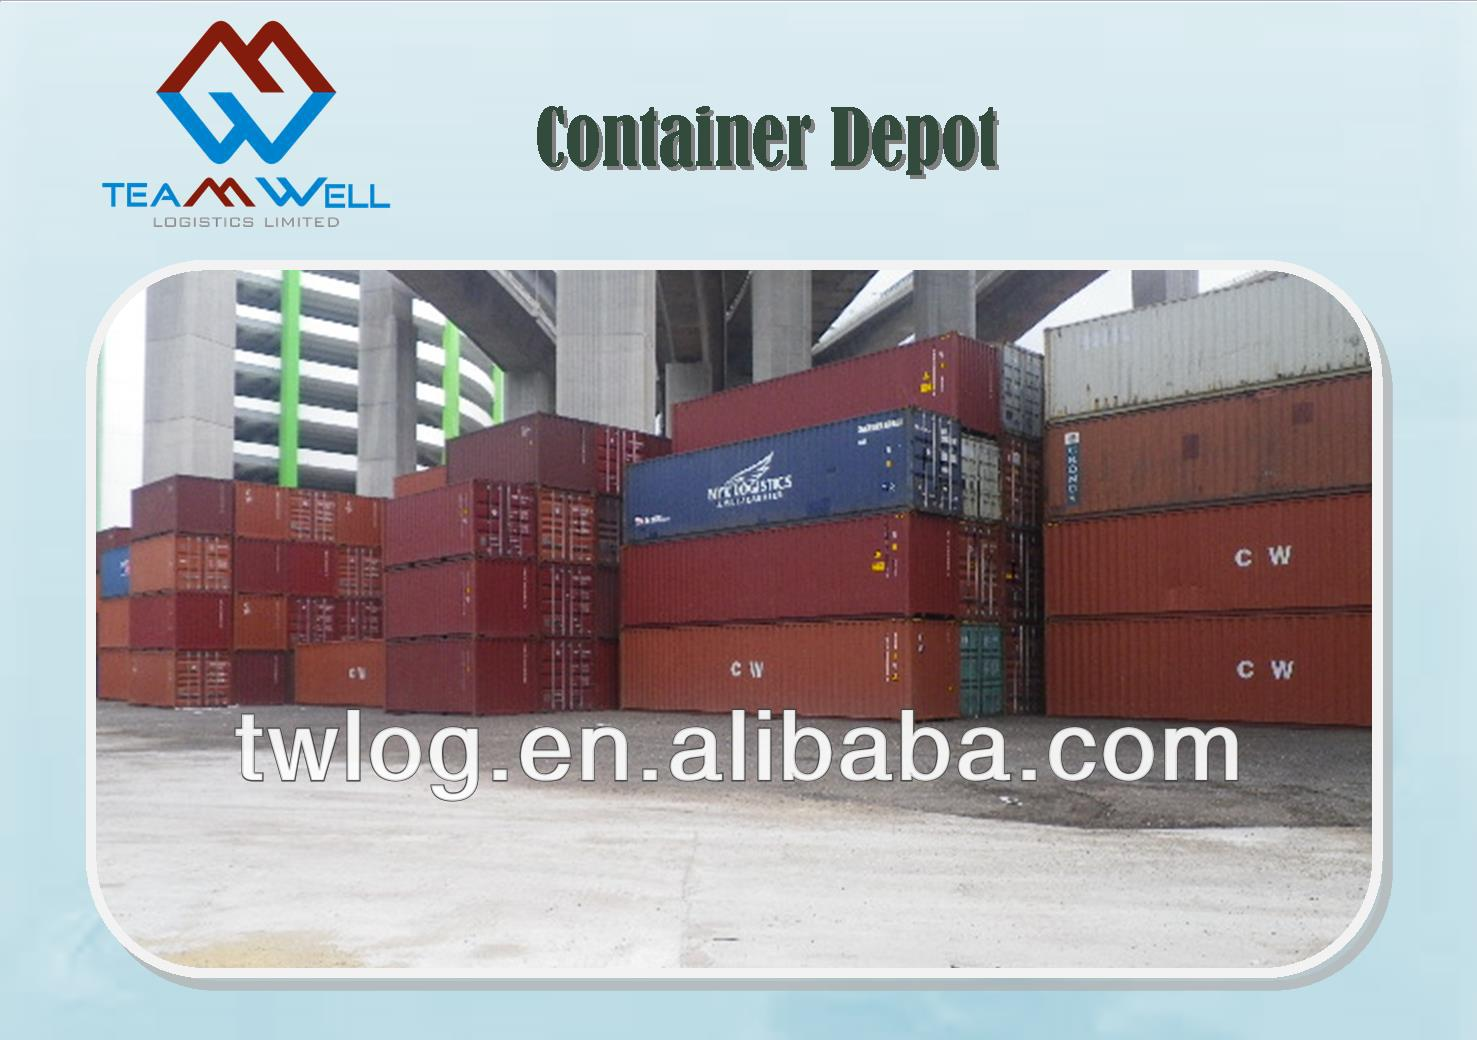 Hong Kong Container depot & Warehouse